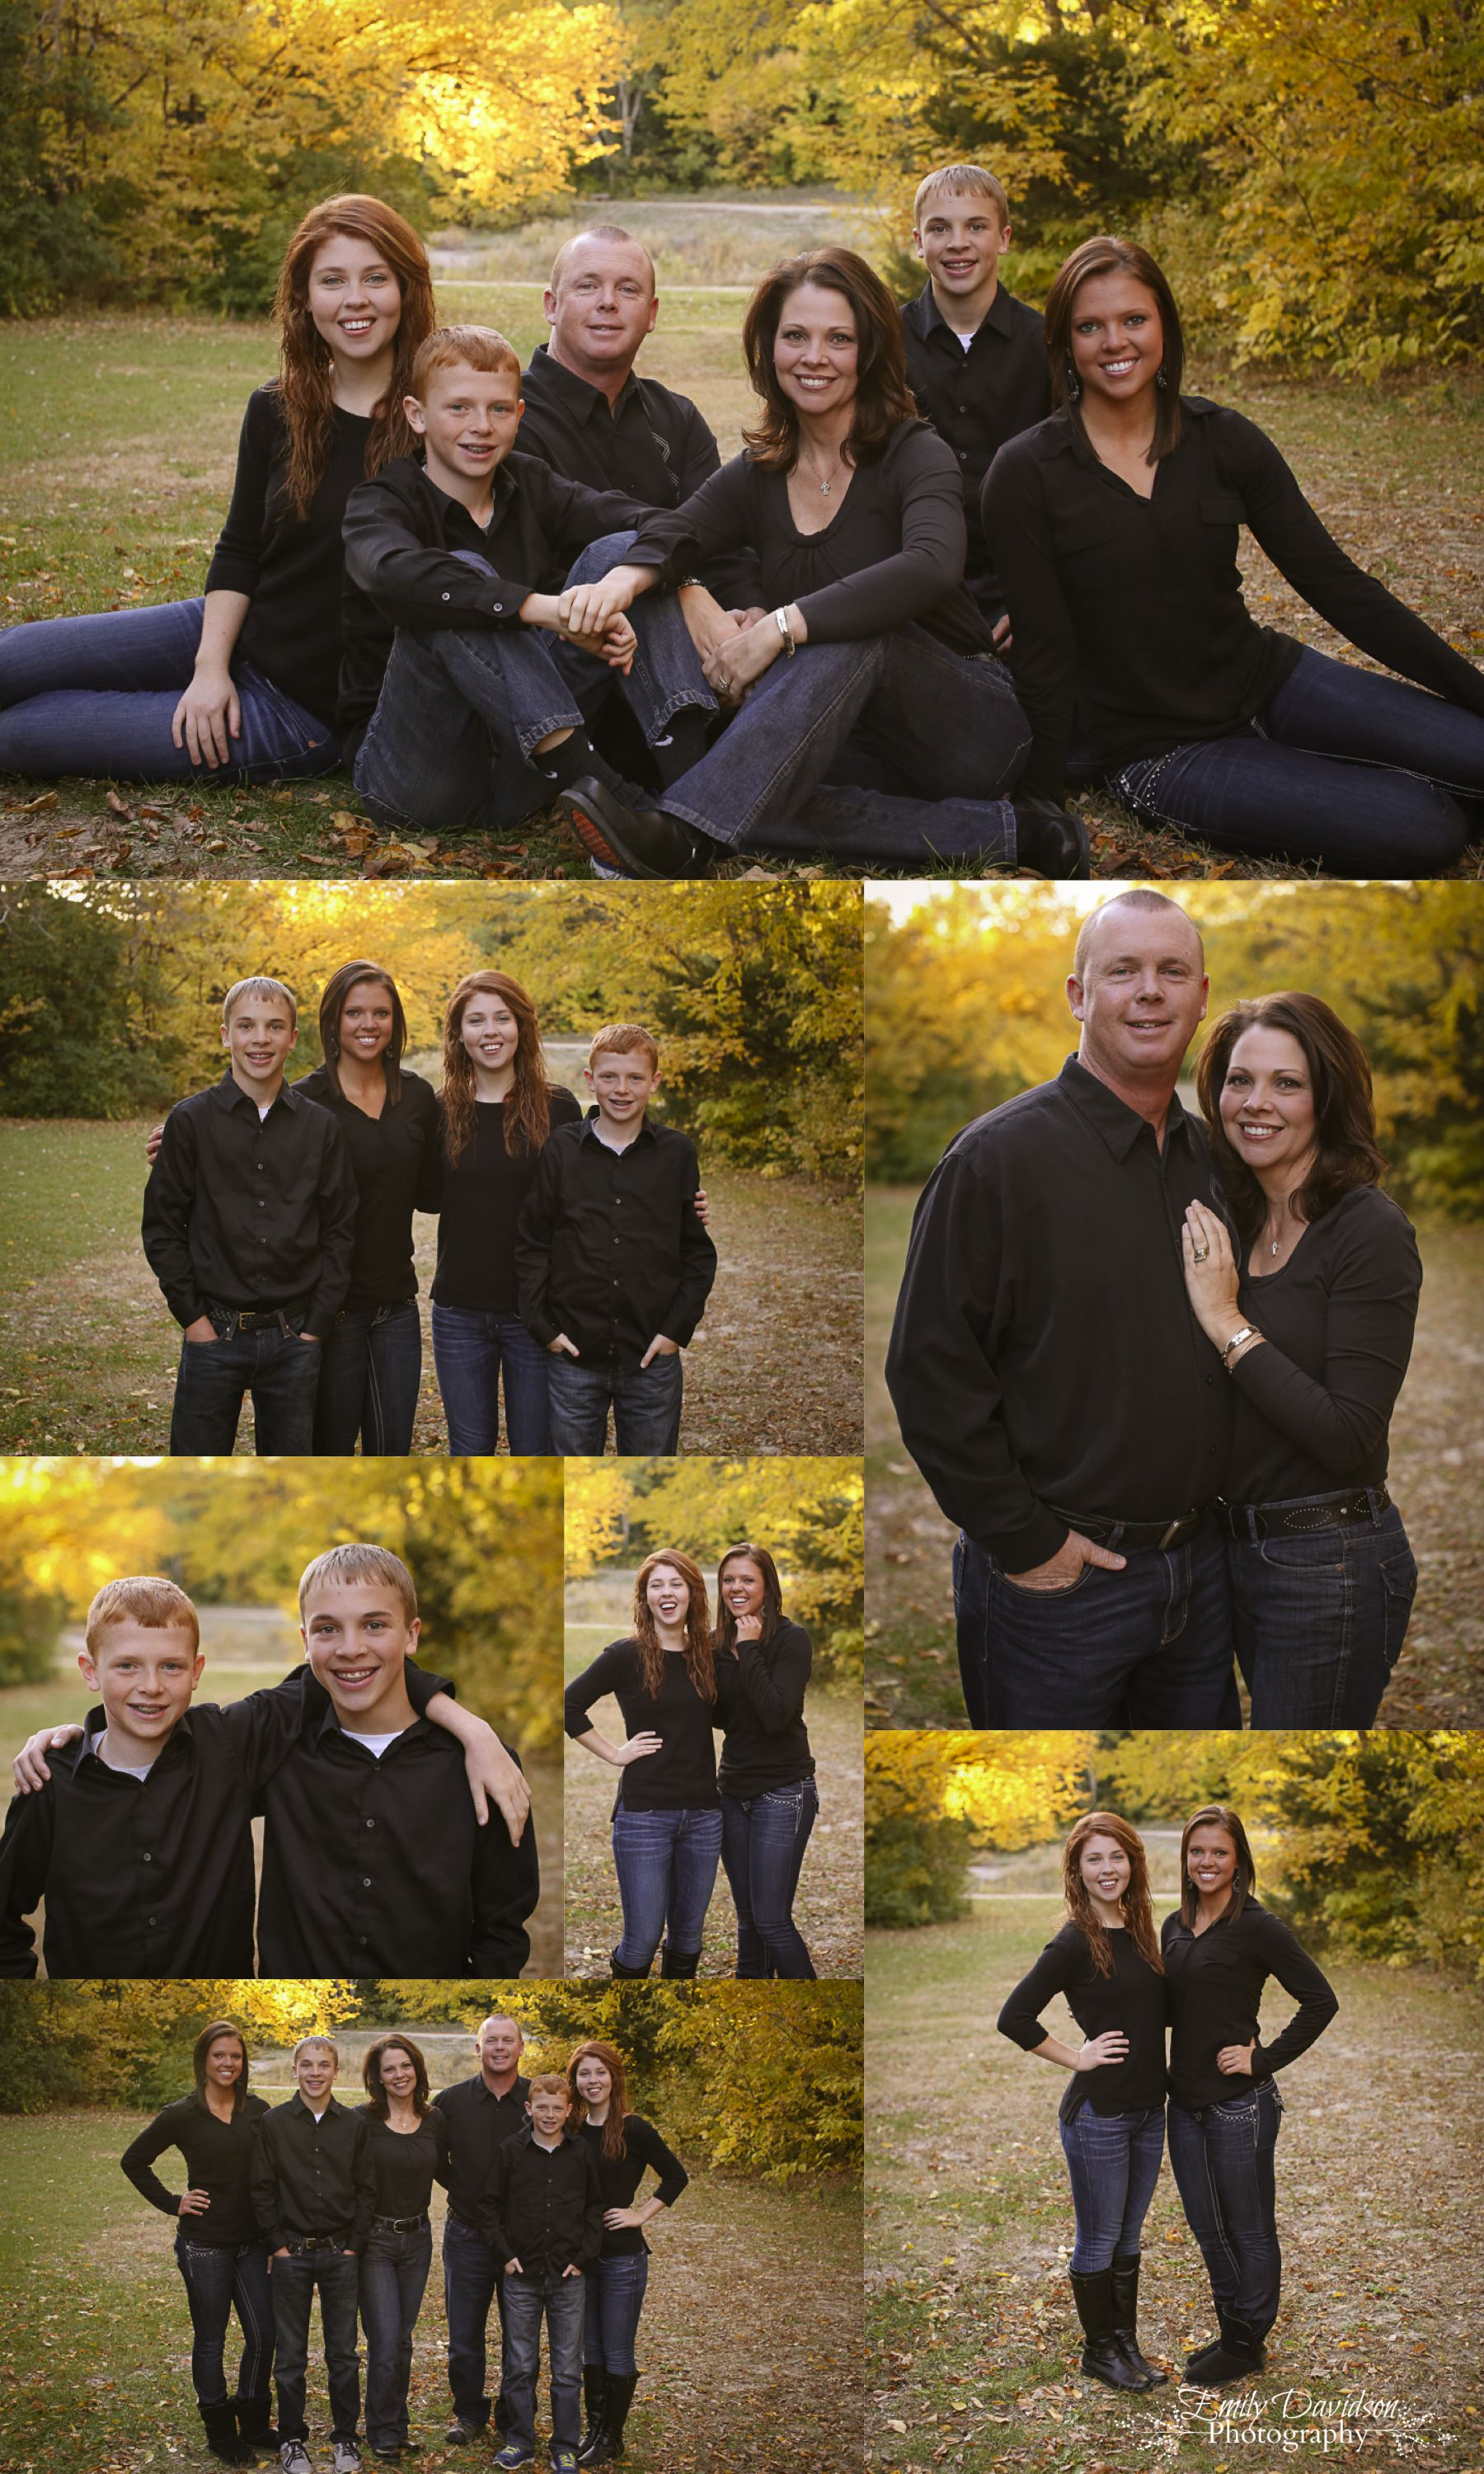 Fall Family Photos Older Children Poses Outfits Love It Emilydavidsonphotography